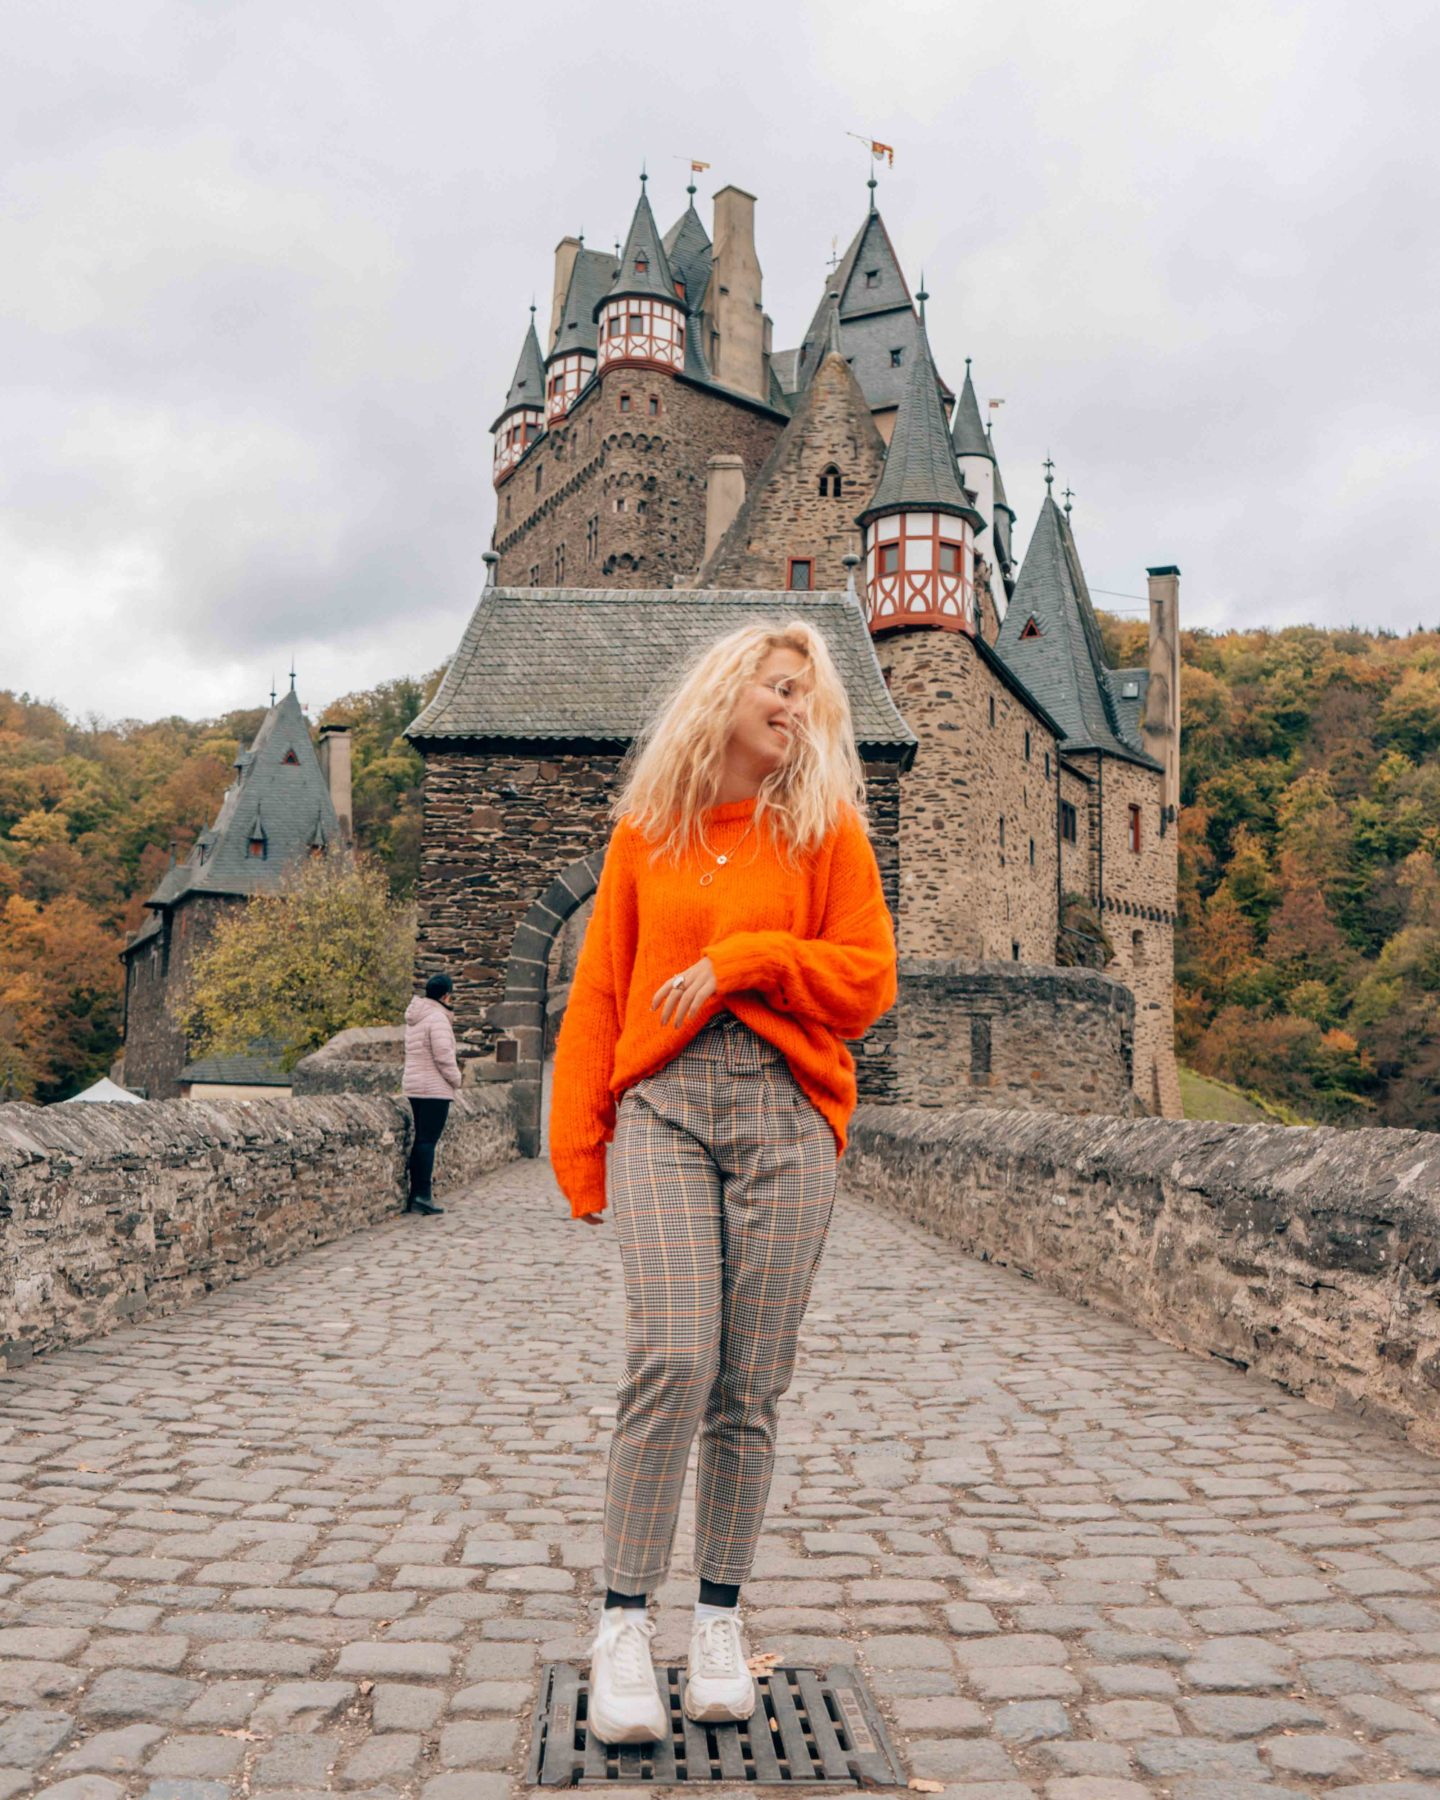 Visit Burg Eltz in Autumn